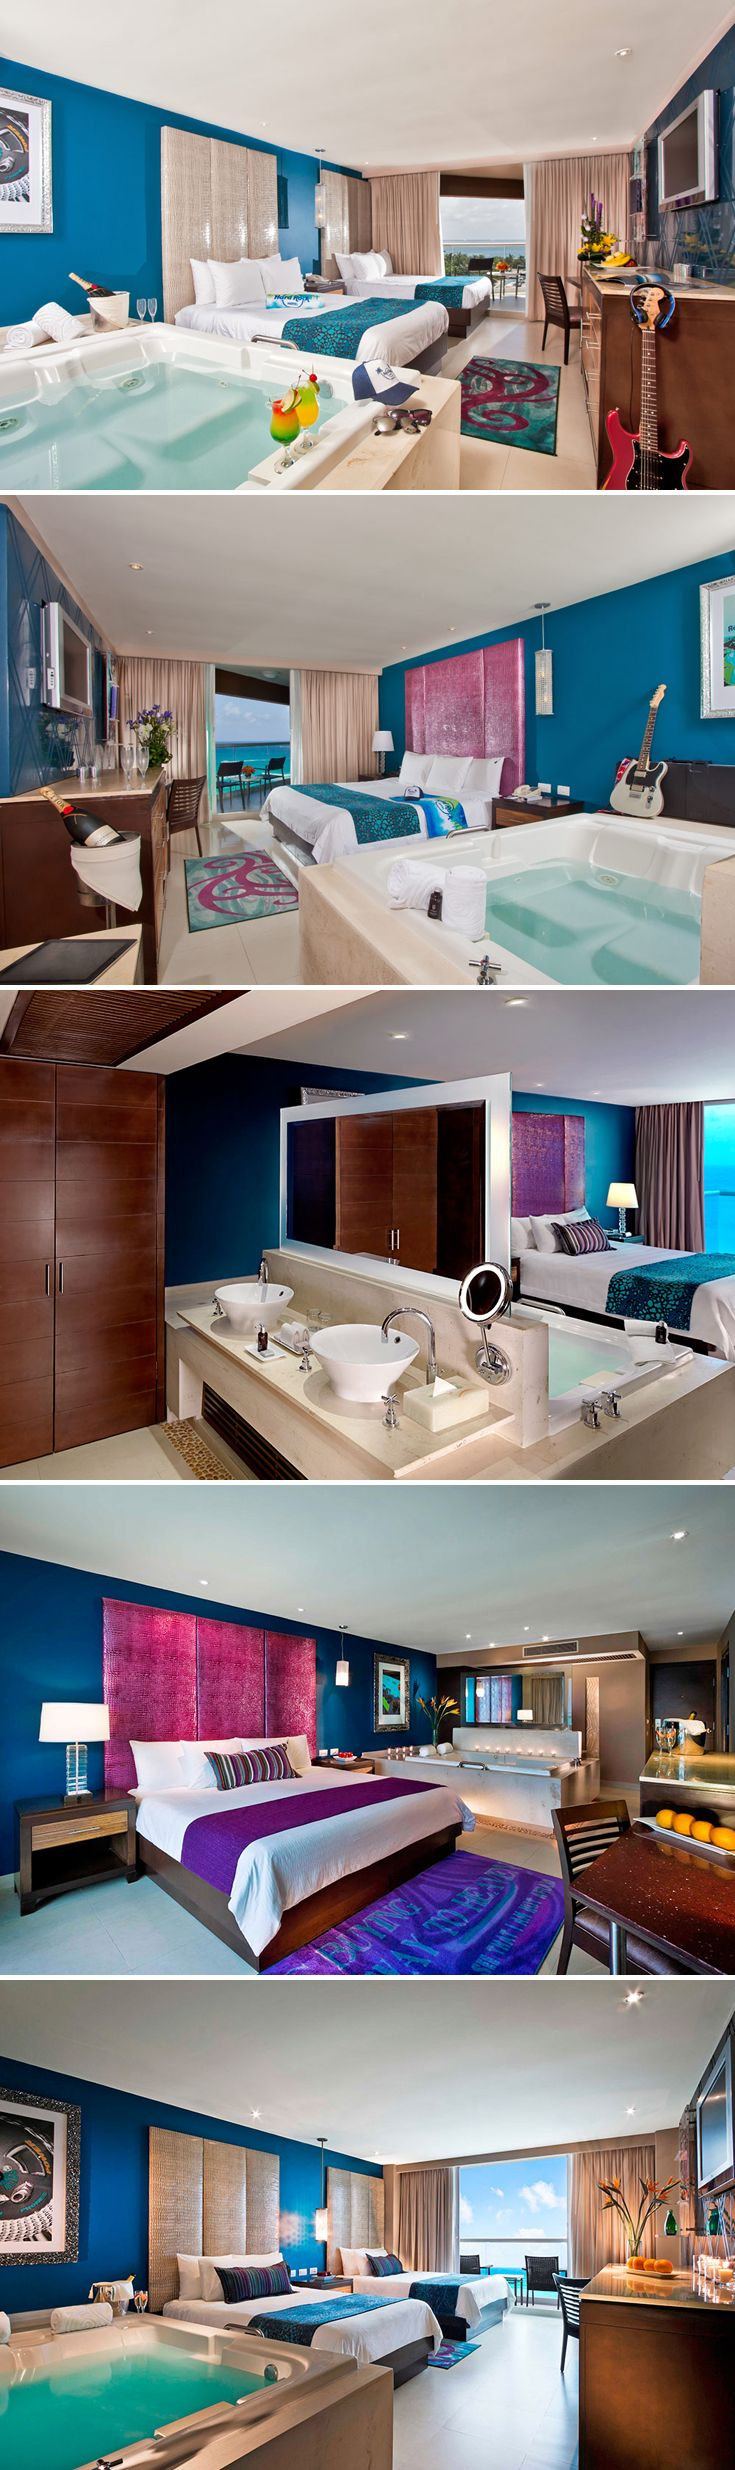 Guest accommodations at the Hard Rock Cancun include 601 luxurious rooms and suites, most with ocean views.